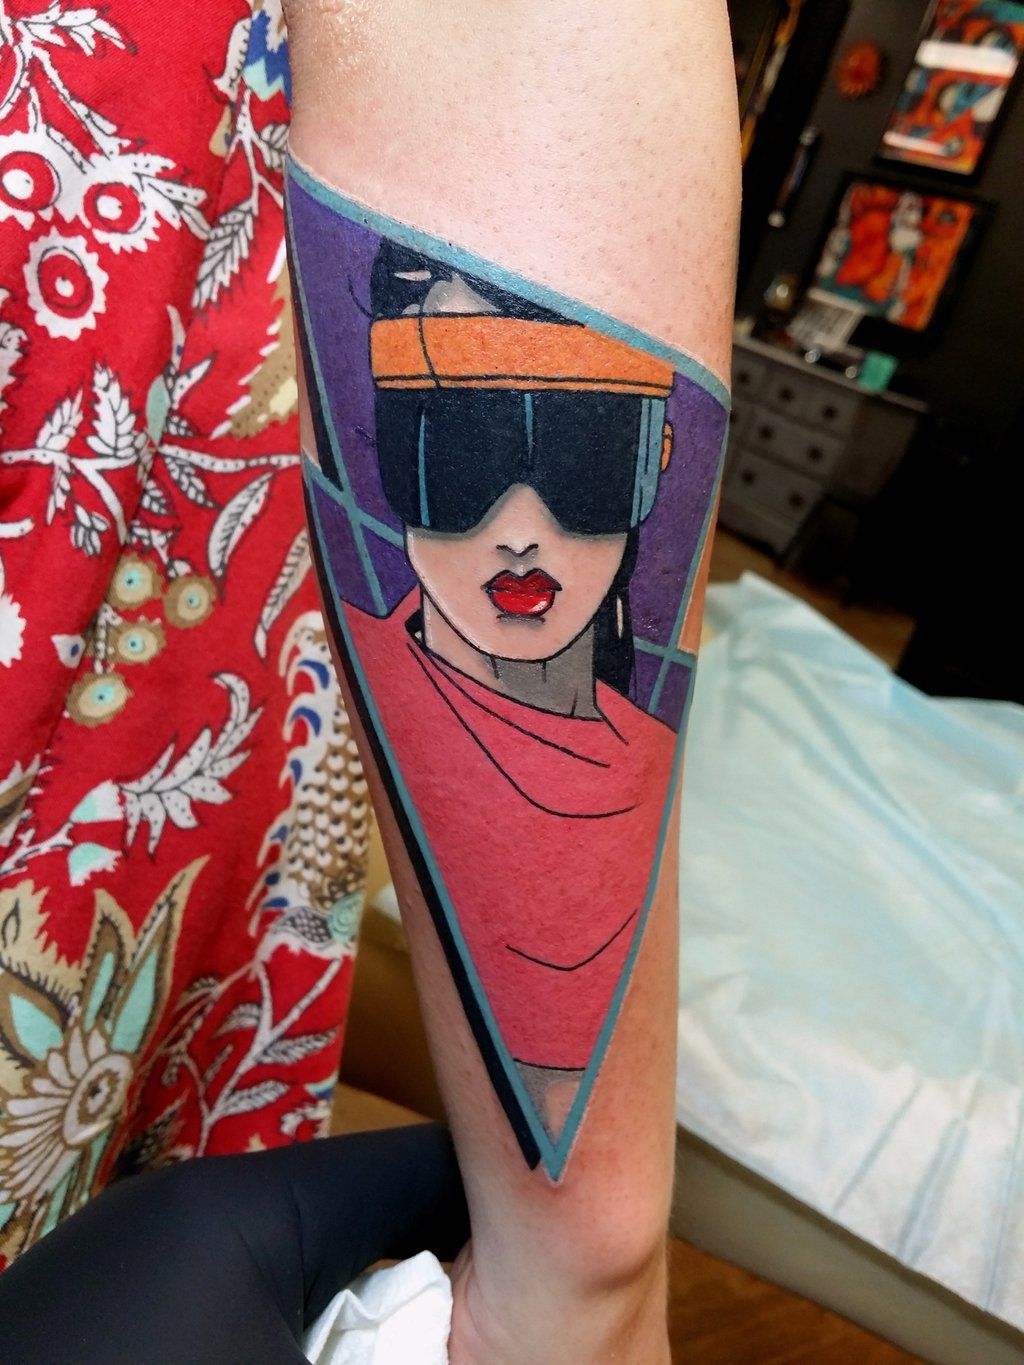 This Rad tattoo of Patrick Nagel's work by Steve Rieck fits here perfectly